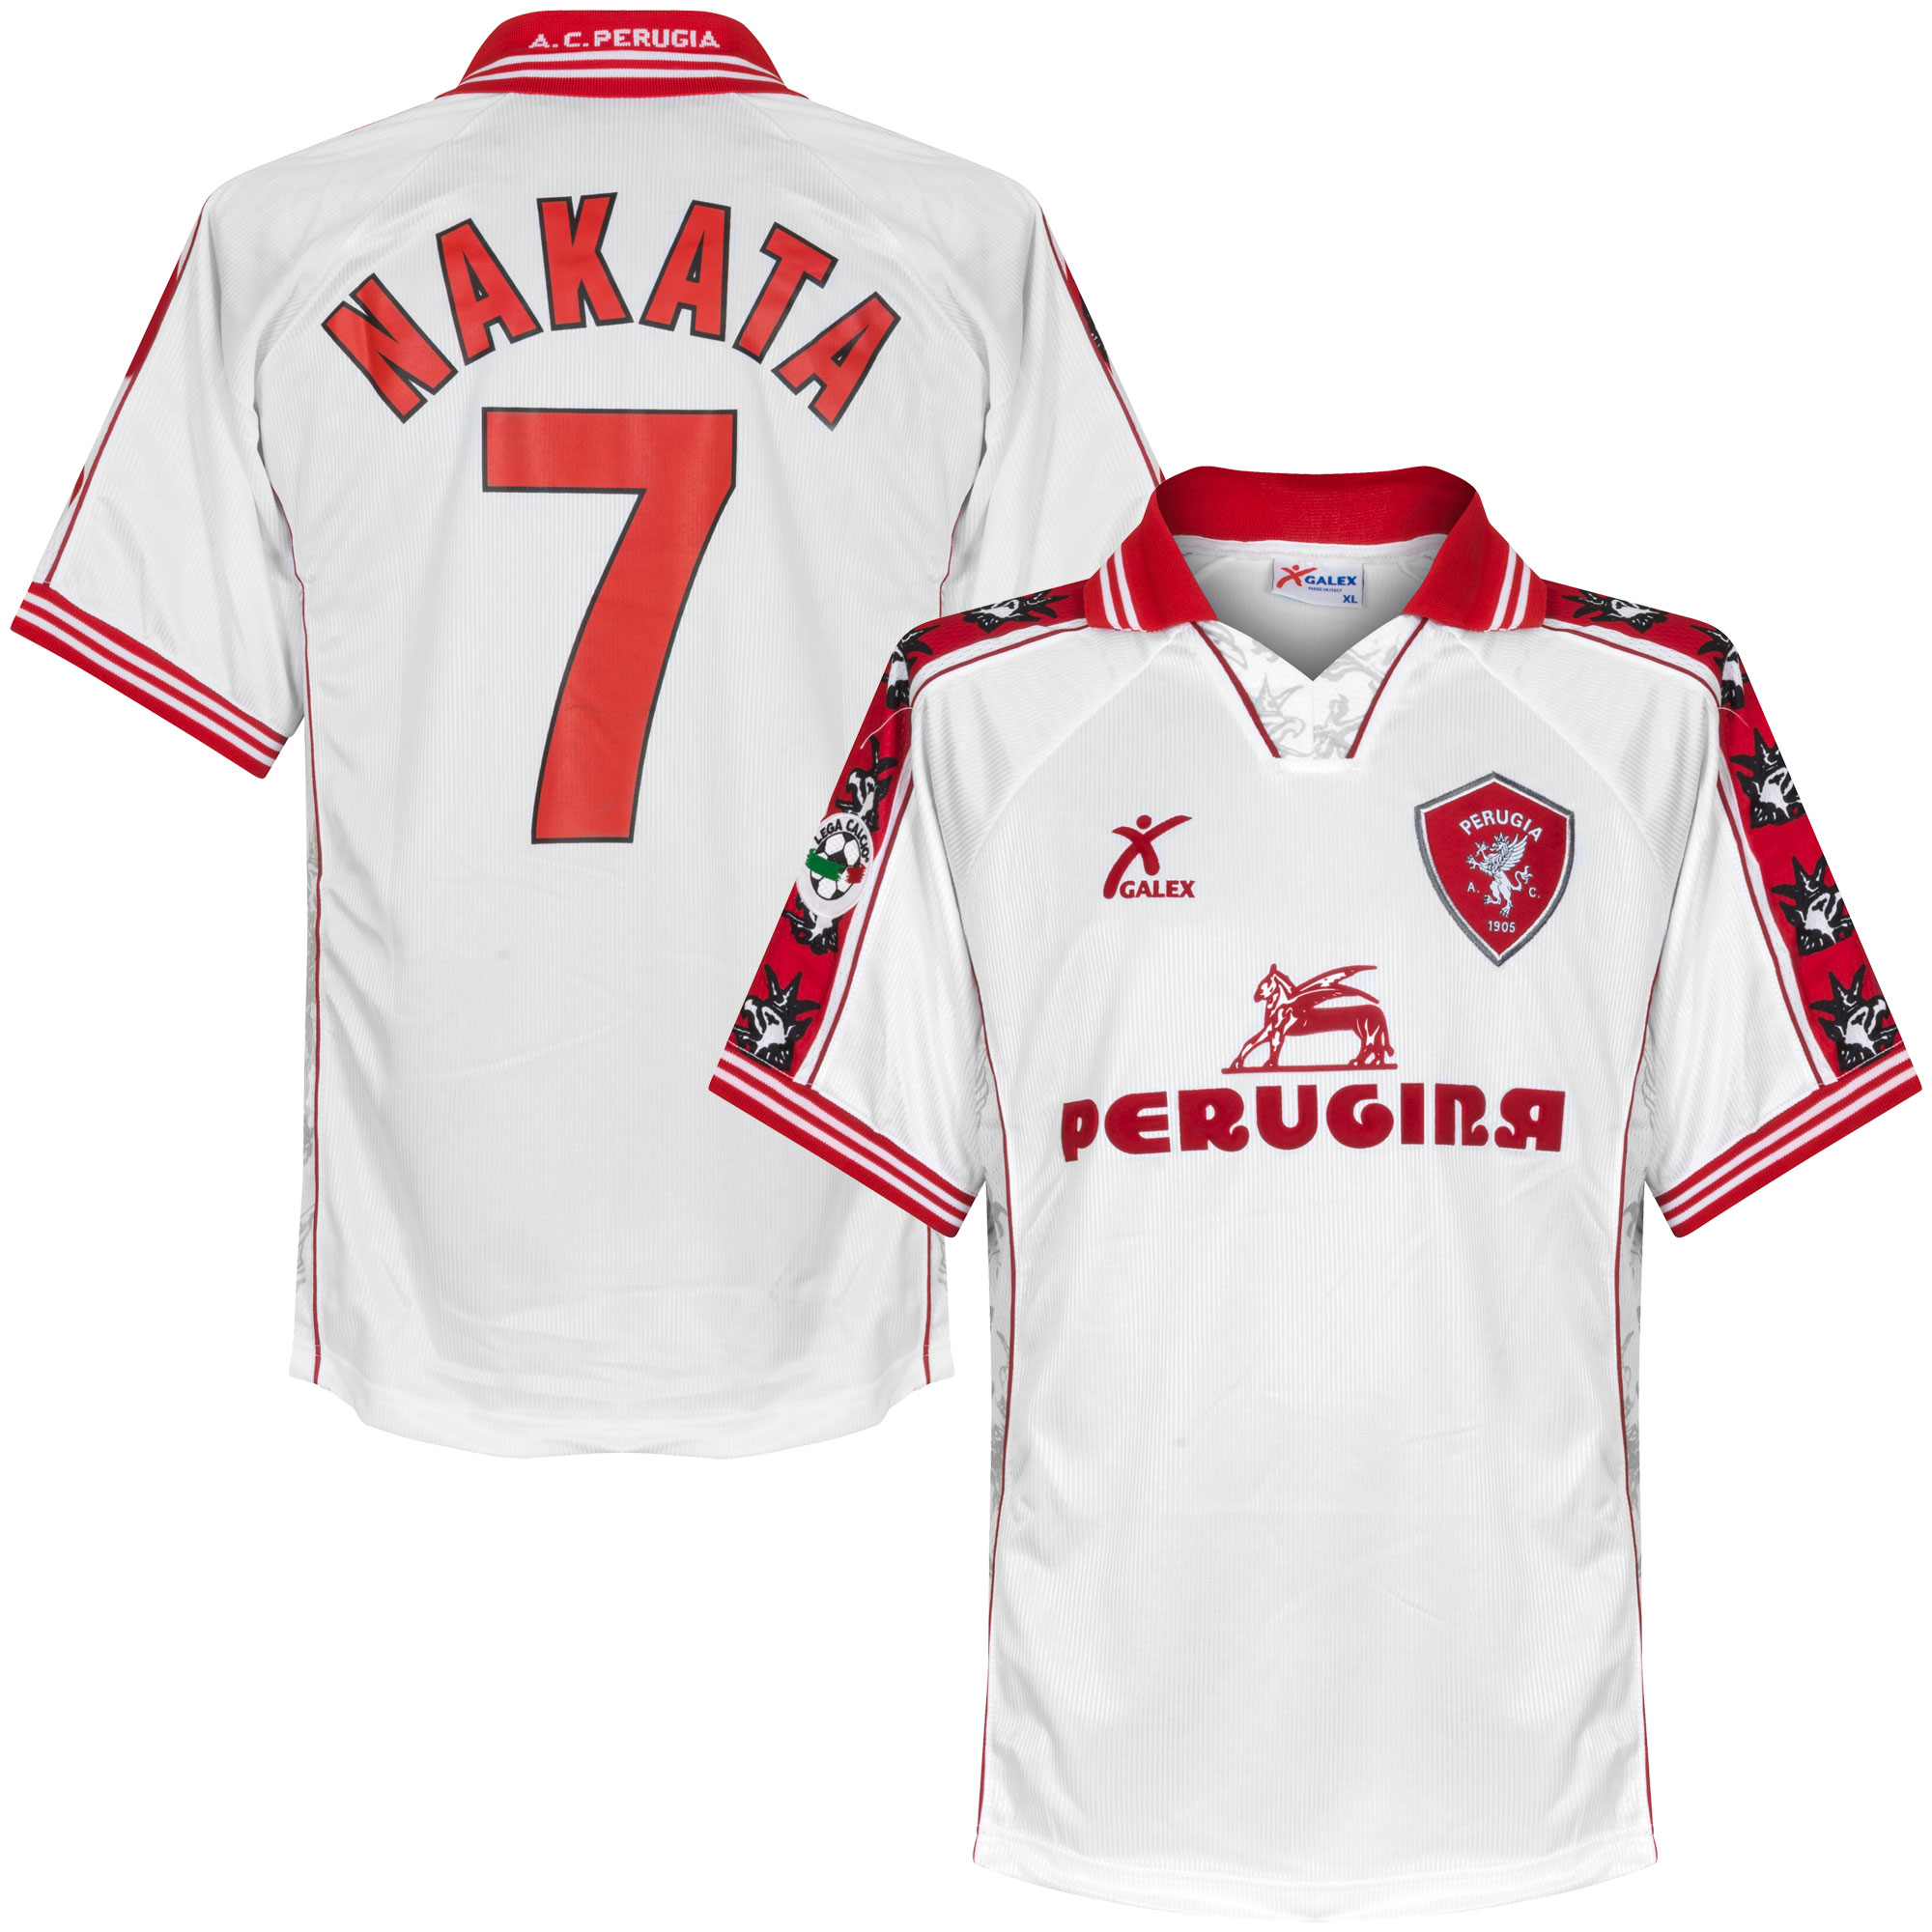 Retro Perugia Shirt